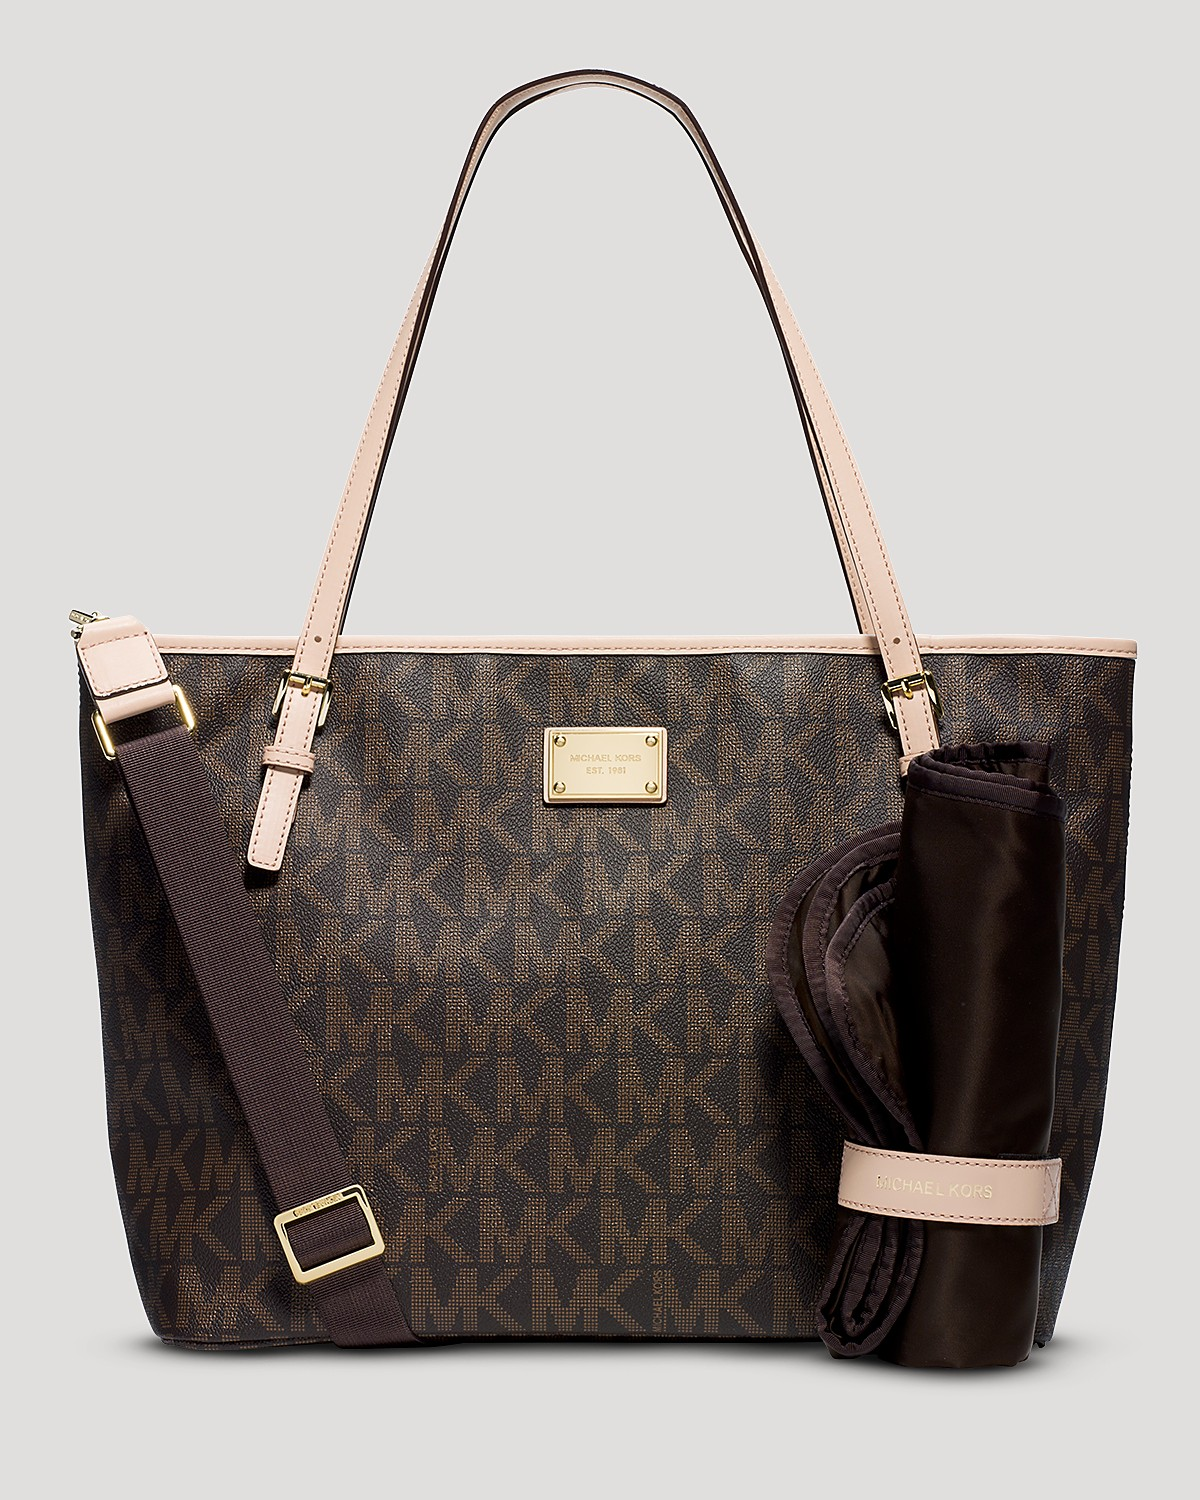 Price of Michael Kors Diaper Bag Replica is LOW LOW LOW 02eb6fd3a0